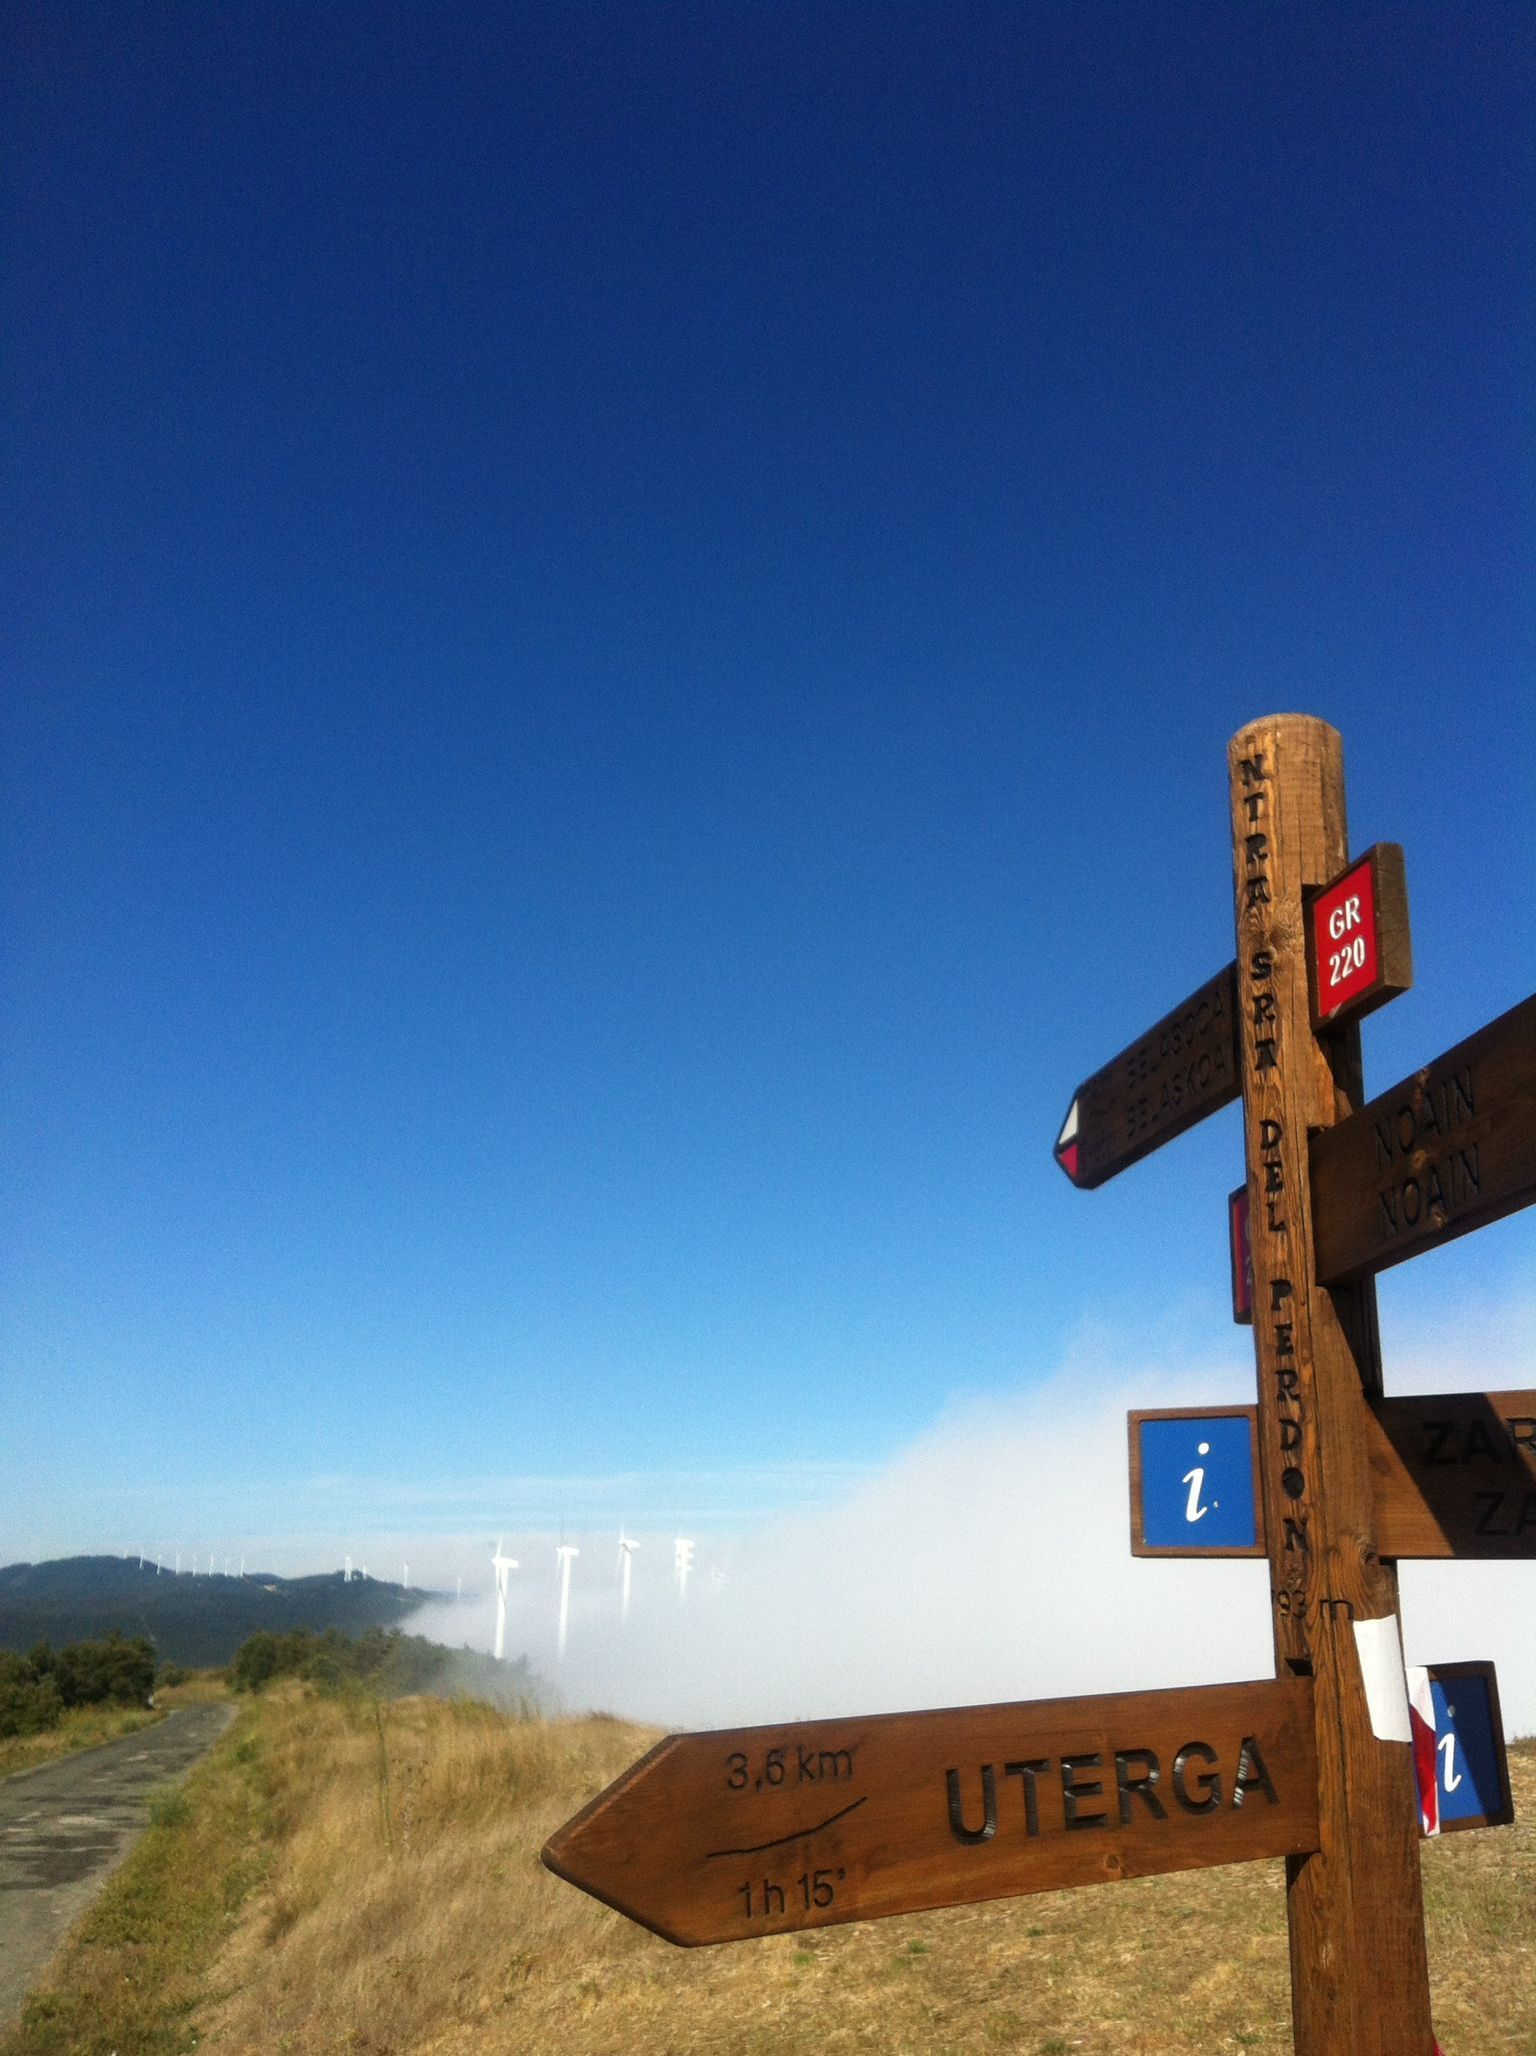 2S4Db calendar. Signpost at the French Way to Santiago